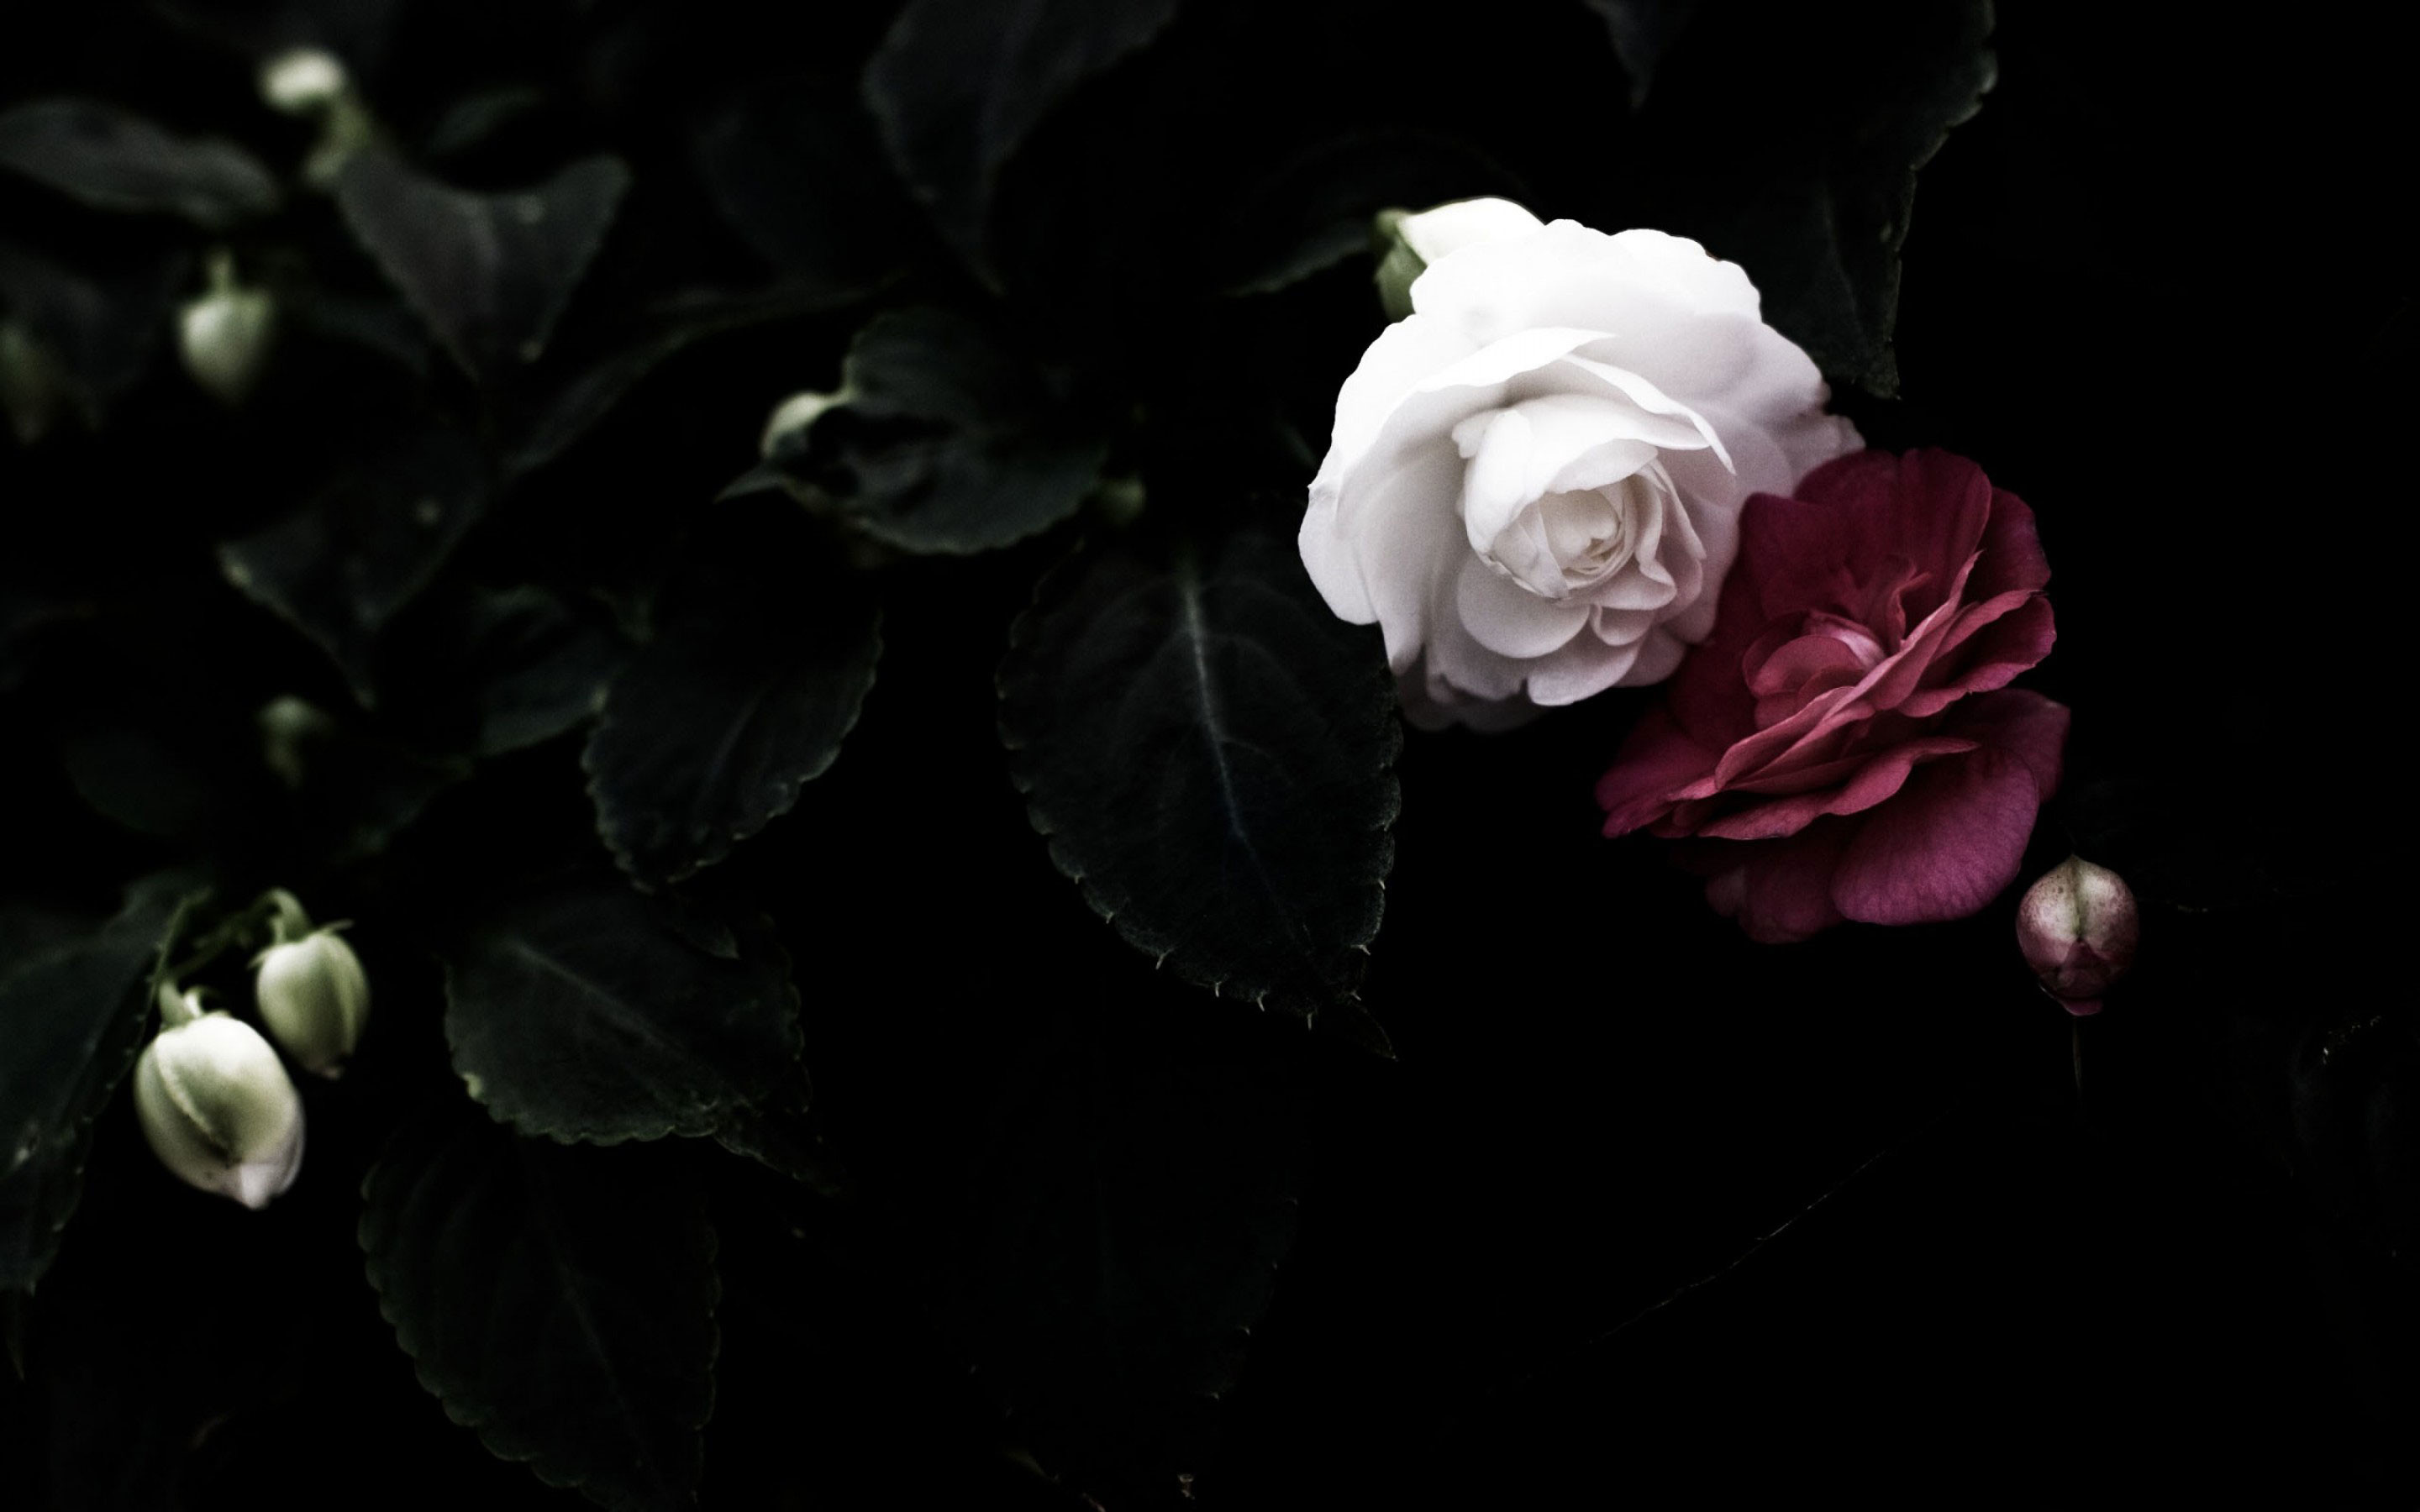 Roses With Black Background 50 Images